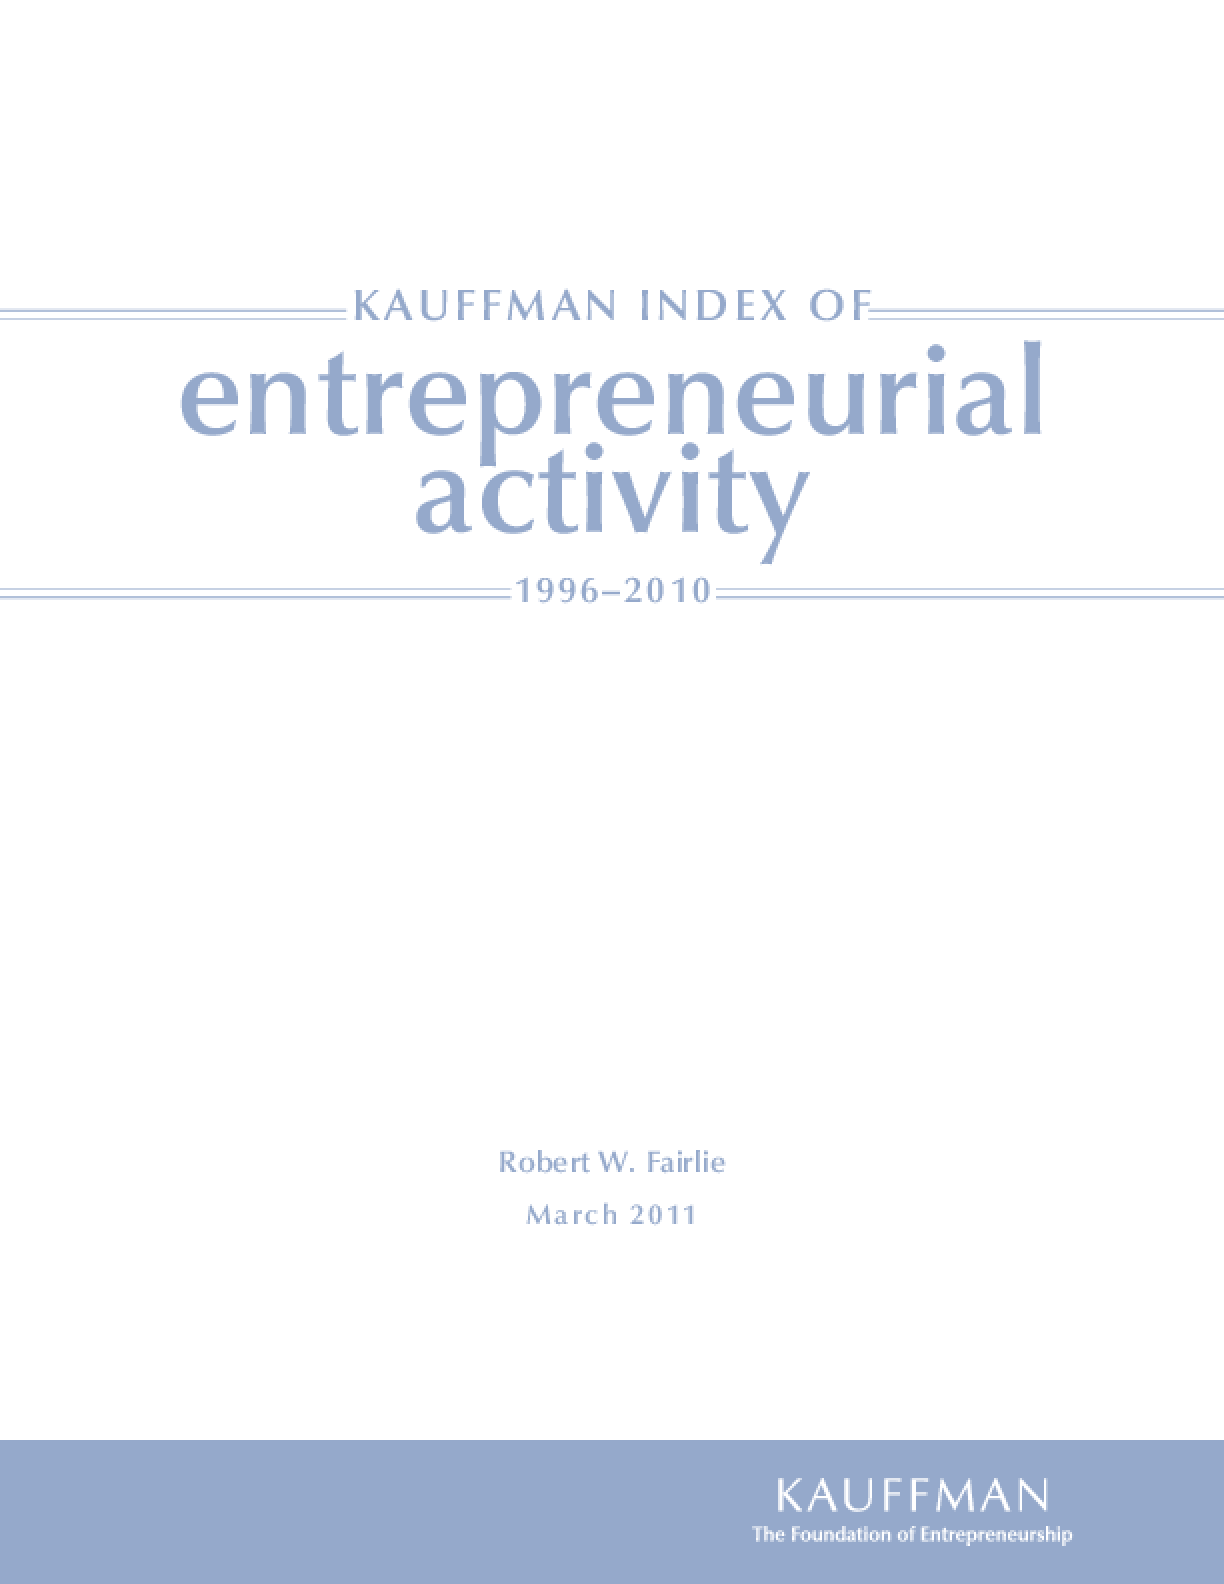 Kauffman Index of Entrepreneurial Activity, 1996-2010